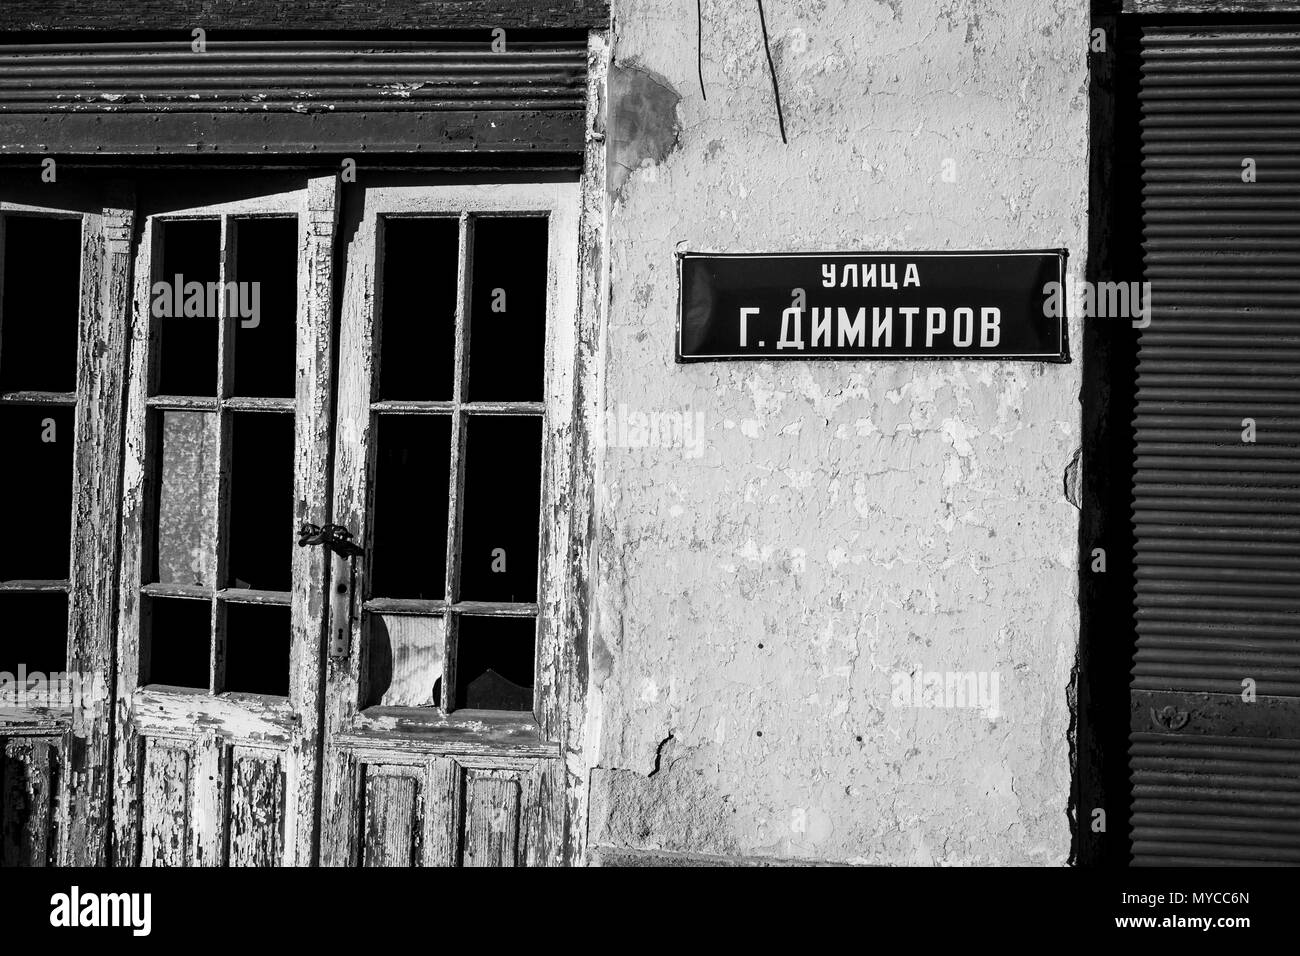 Street tinplate sign in Cyrillic G.Dimitrov on abandoned ruined house in small Bulgarian village, black and white image - Stock Image